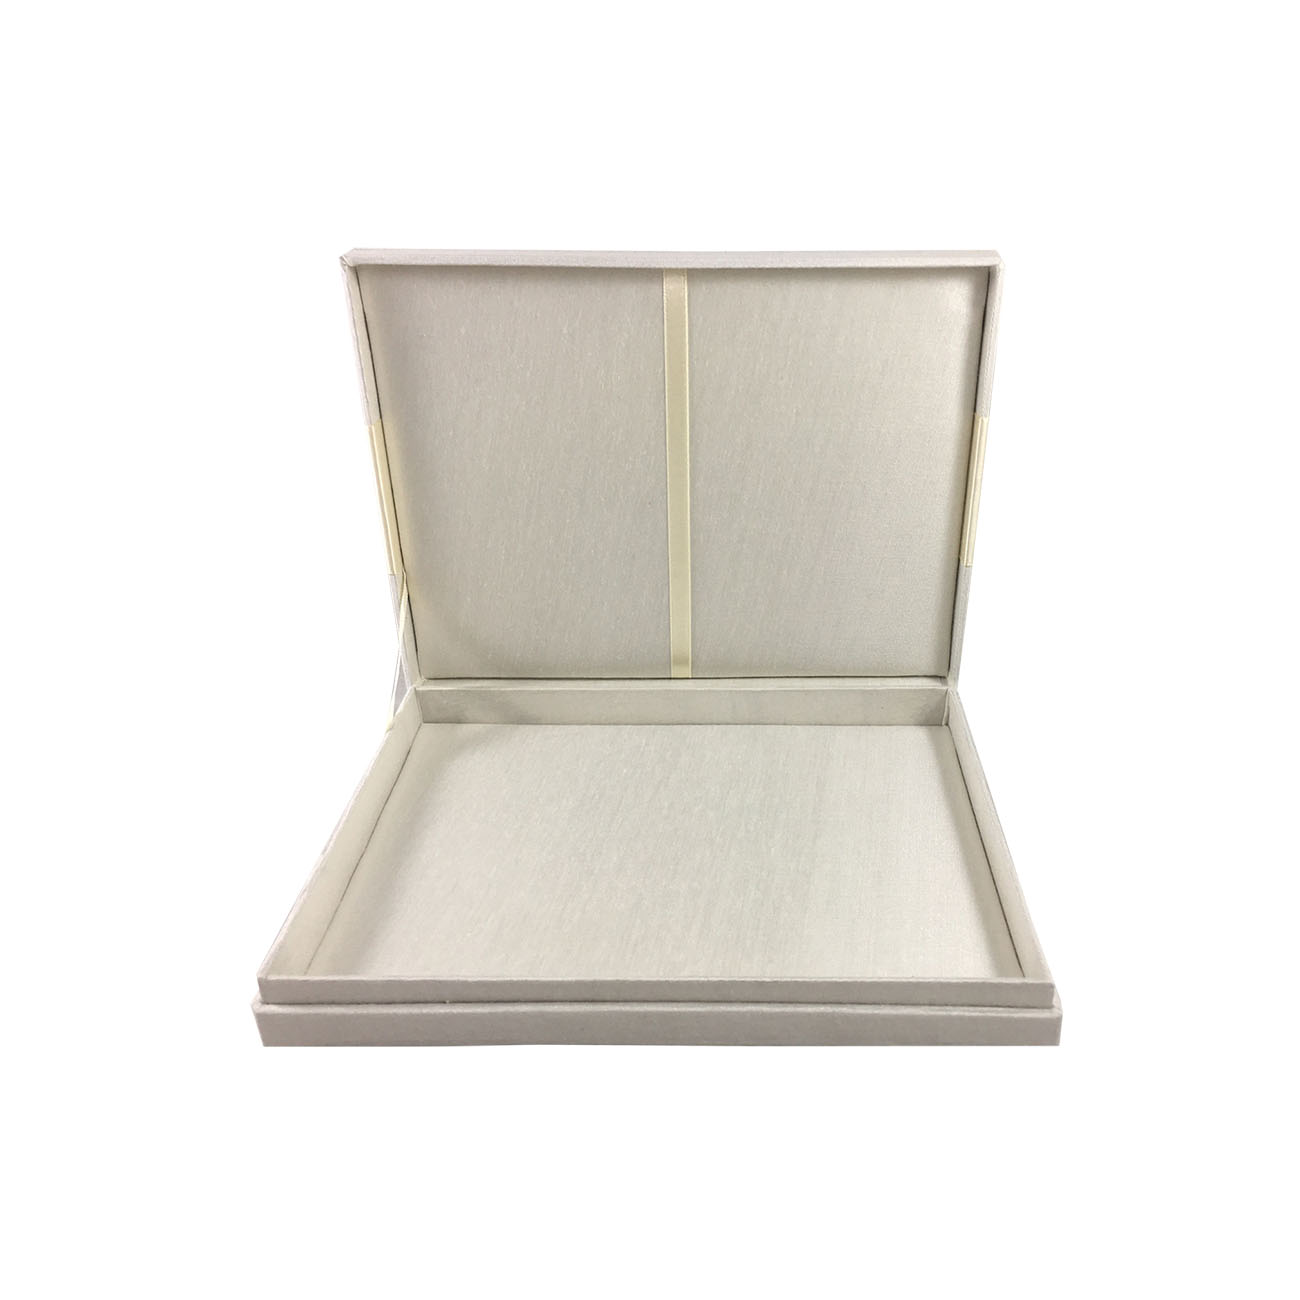 Ivory Boxed Wedding Invitation With Hinged Lid Ribbon For DIY Invitations